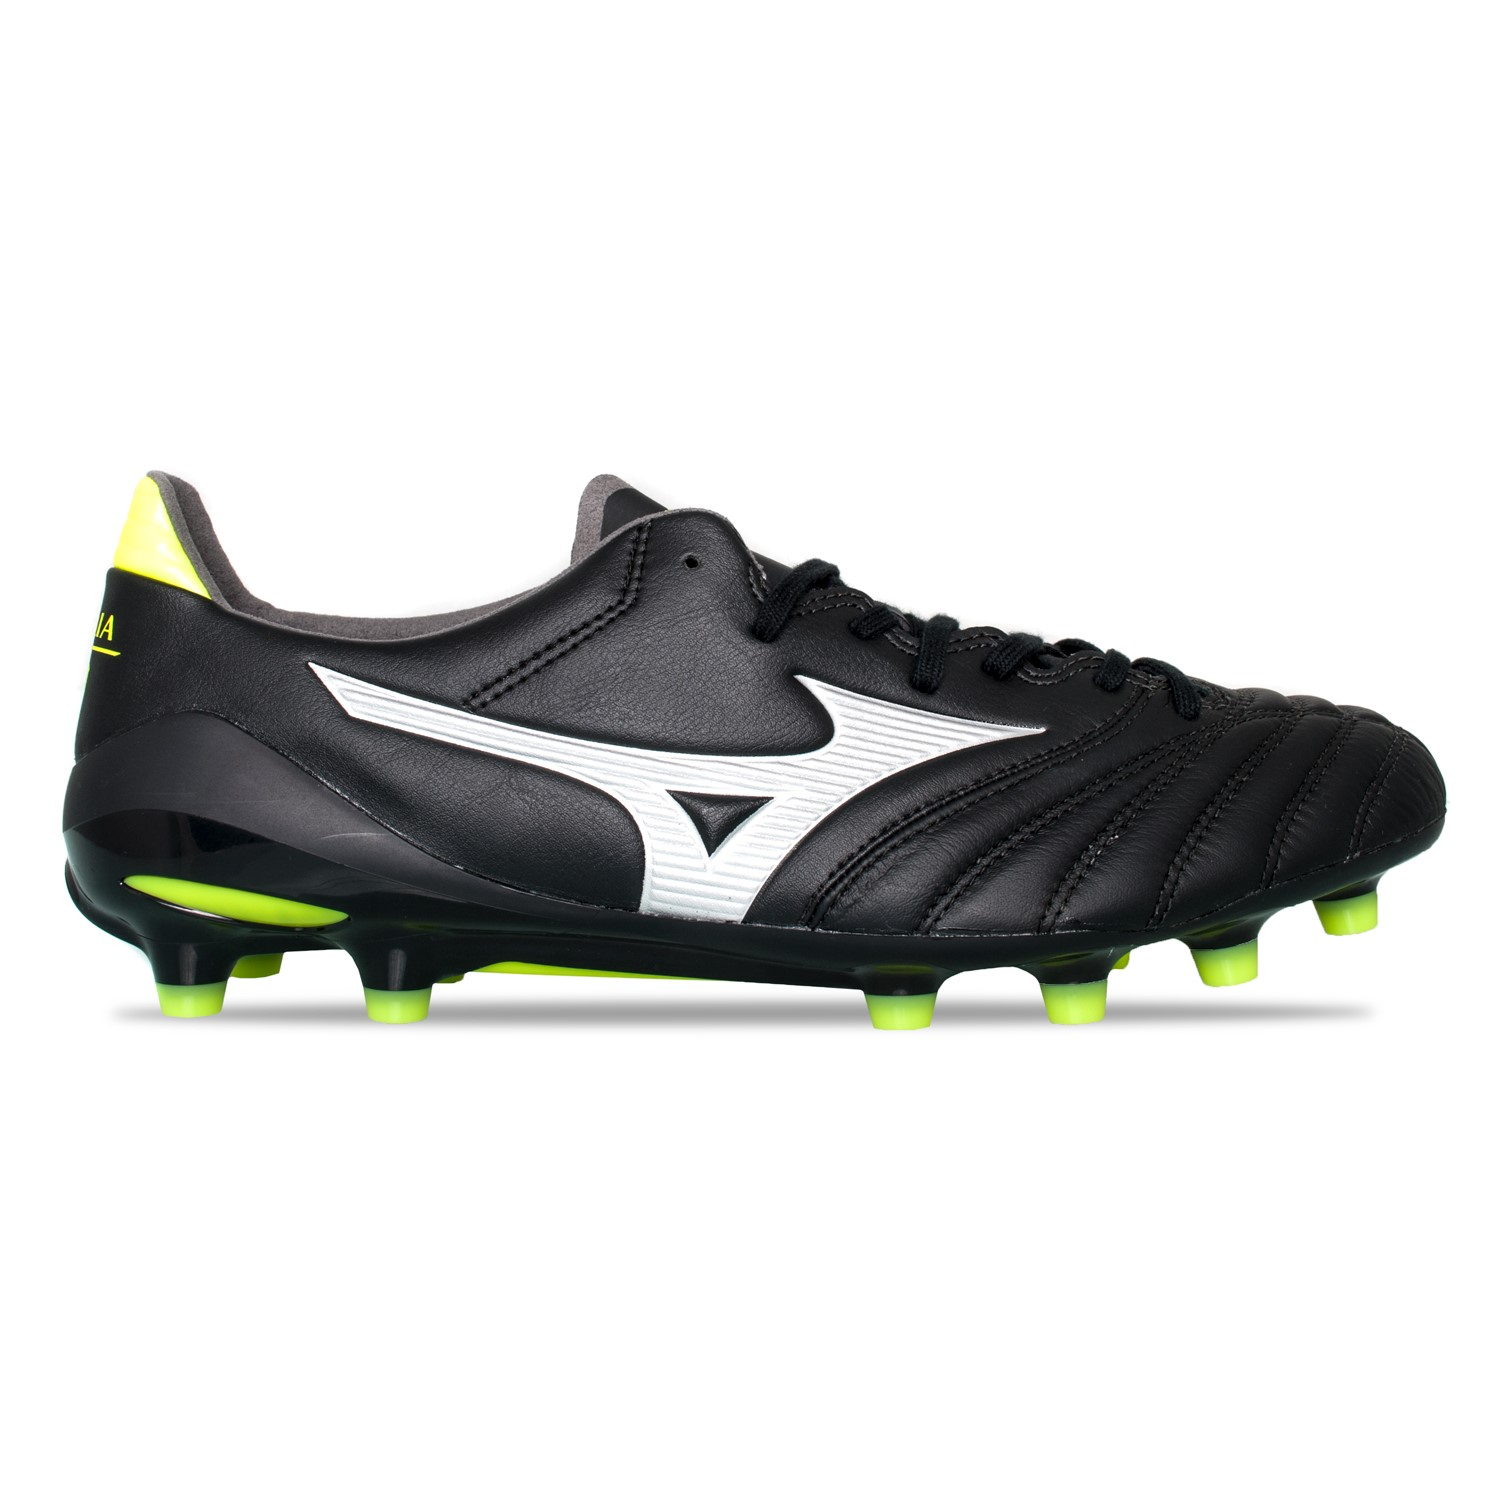 innovative design c0b00 63aa4 Mizuno Morelia Neo II MD - Mens Football Boots